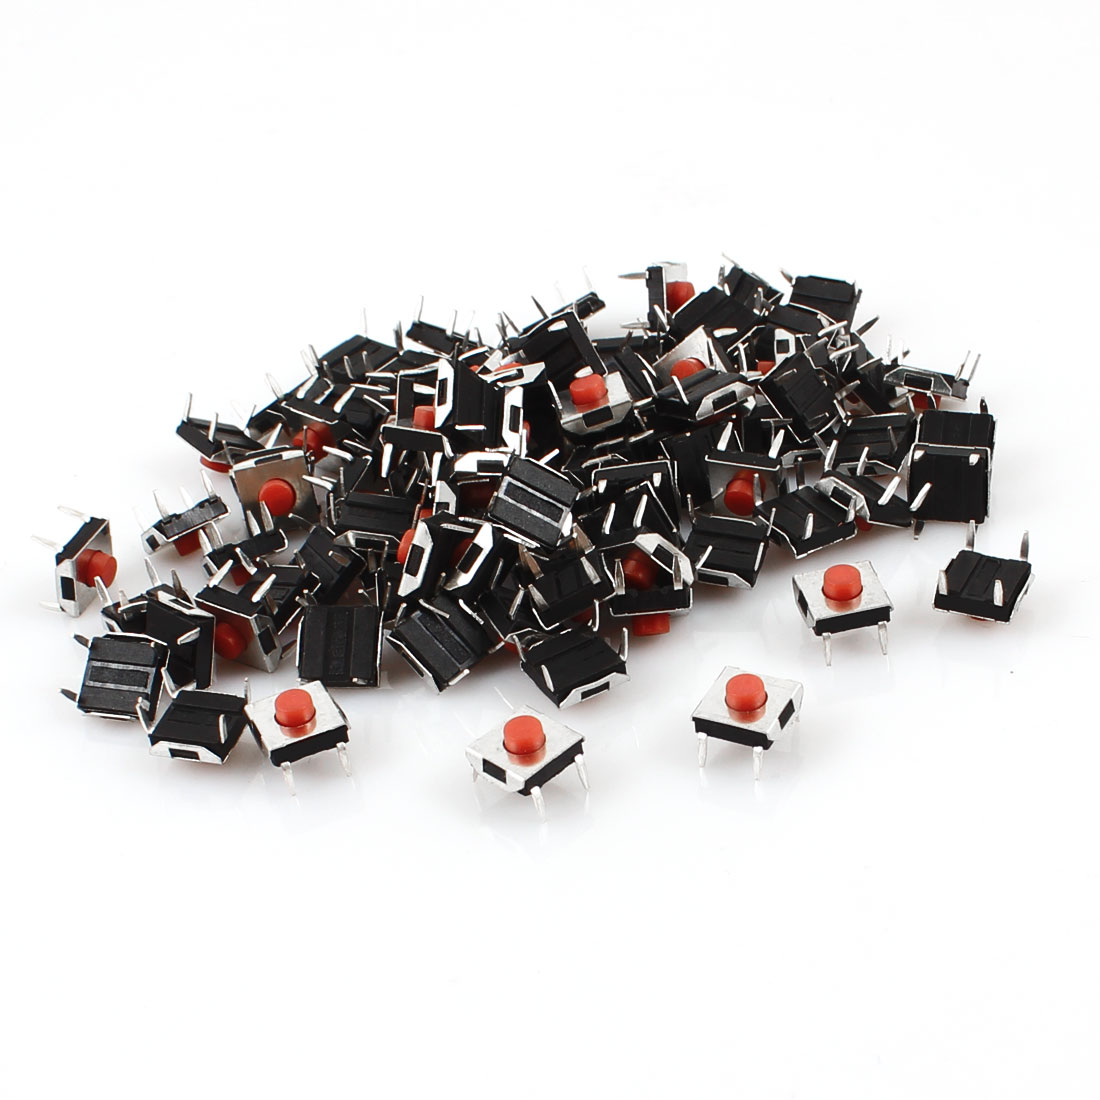 95 Pcs 6x6.5x6mm 4 Pins Momentary DIP Tactile Tact Push Button Switch